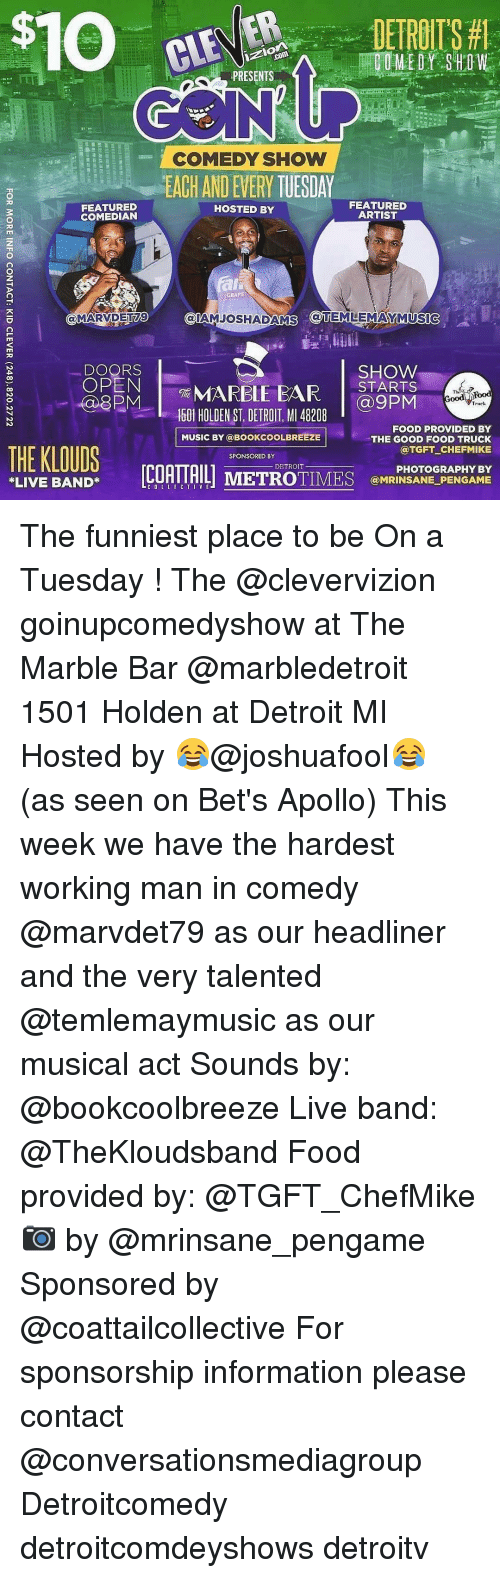 Detroit, Memes, and Music: FEATURED  COMEDIAN  MARVIDETIA9  DOORS  OPEN  THE KLOUDS  LIVE BAND  PRESENTS  COMEDY SHOW  FEATURED  HOSTED BY  ARTIST  GRAPE  SHOW  STARTS  NMARELE EAR  ood Food  Truck  @9 PM  1501 HOLDEN ST DETROIT MI 48208  FOOD PROVIDED BY  MUSIC BY @BOOKCOOL BREEZE  THE GOOD FOOD TRUCK  TGFT CHEFMIKE  SPONSORED BY  DETROIT  VE  TIMES PHOTOGRAPHY BY  @MRINSANE PENGAME The funniest place to be On a Tuesday ! The @clevervizion goinupcomedyshow at The Marble Bar @marbledetroit 1501 Holden at Detroit MI Hosted by 😂@joshuafool😂 (as seen on Bet's Apollo) This week we have the hardest working man in comedy @marvdet79 as our headliner and the very talented @temlemaymusic as our musical act Sounds by: @bookcoolbreeze Live band: @TheKloudsband Food provided by: @TGFT_ChefMike 📷 by @mrinsane_pengame Sponsored by @coattailcollective For sponsorship information please contact @conversationsmediagroup Detroitcomedy detroitcomdeyshows detroitv